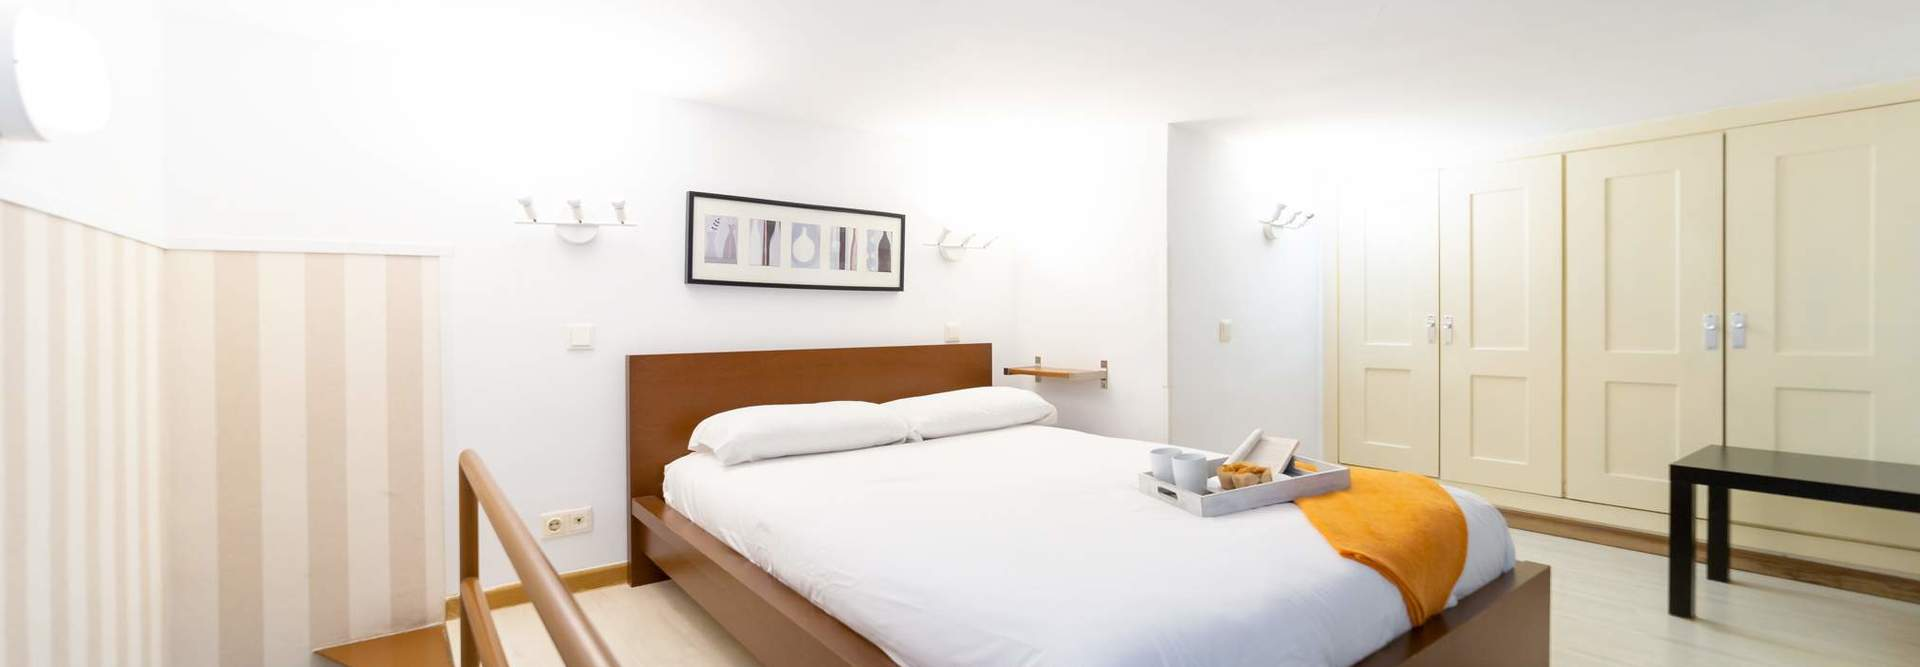 Home alquiler apartamentos madrid mad4rent 08